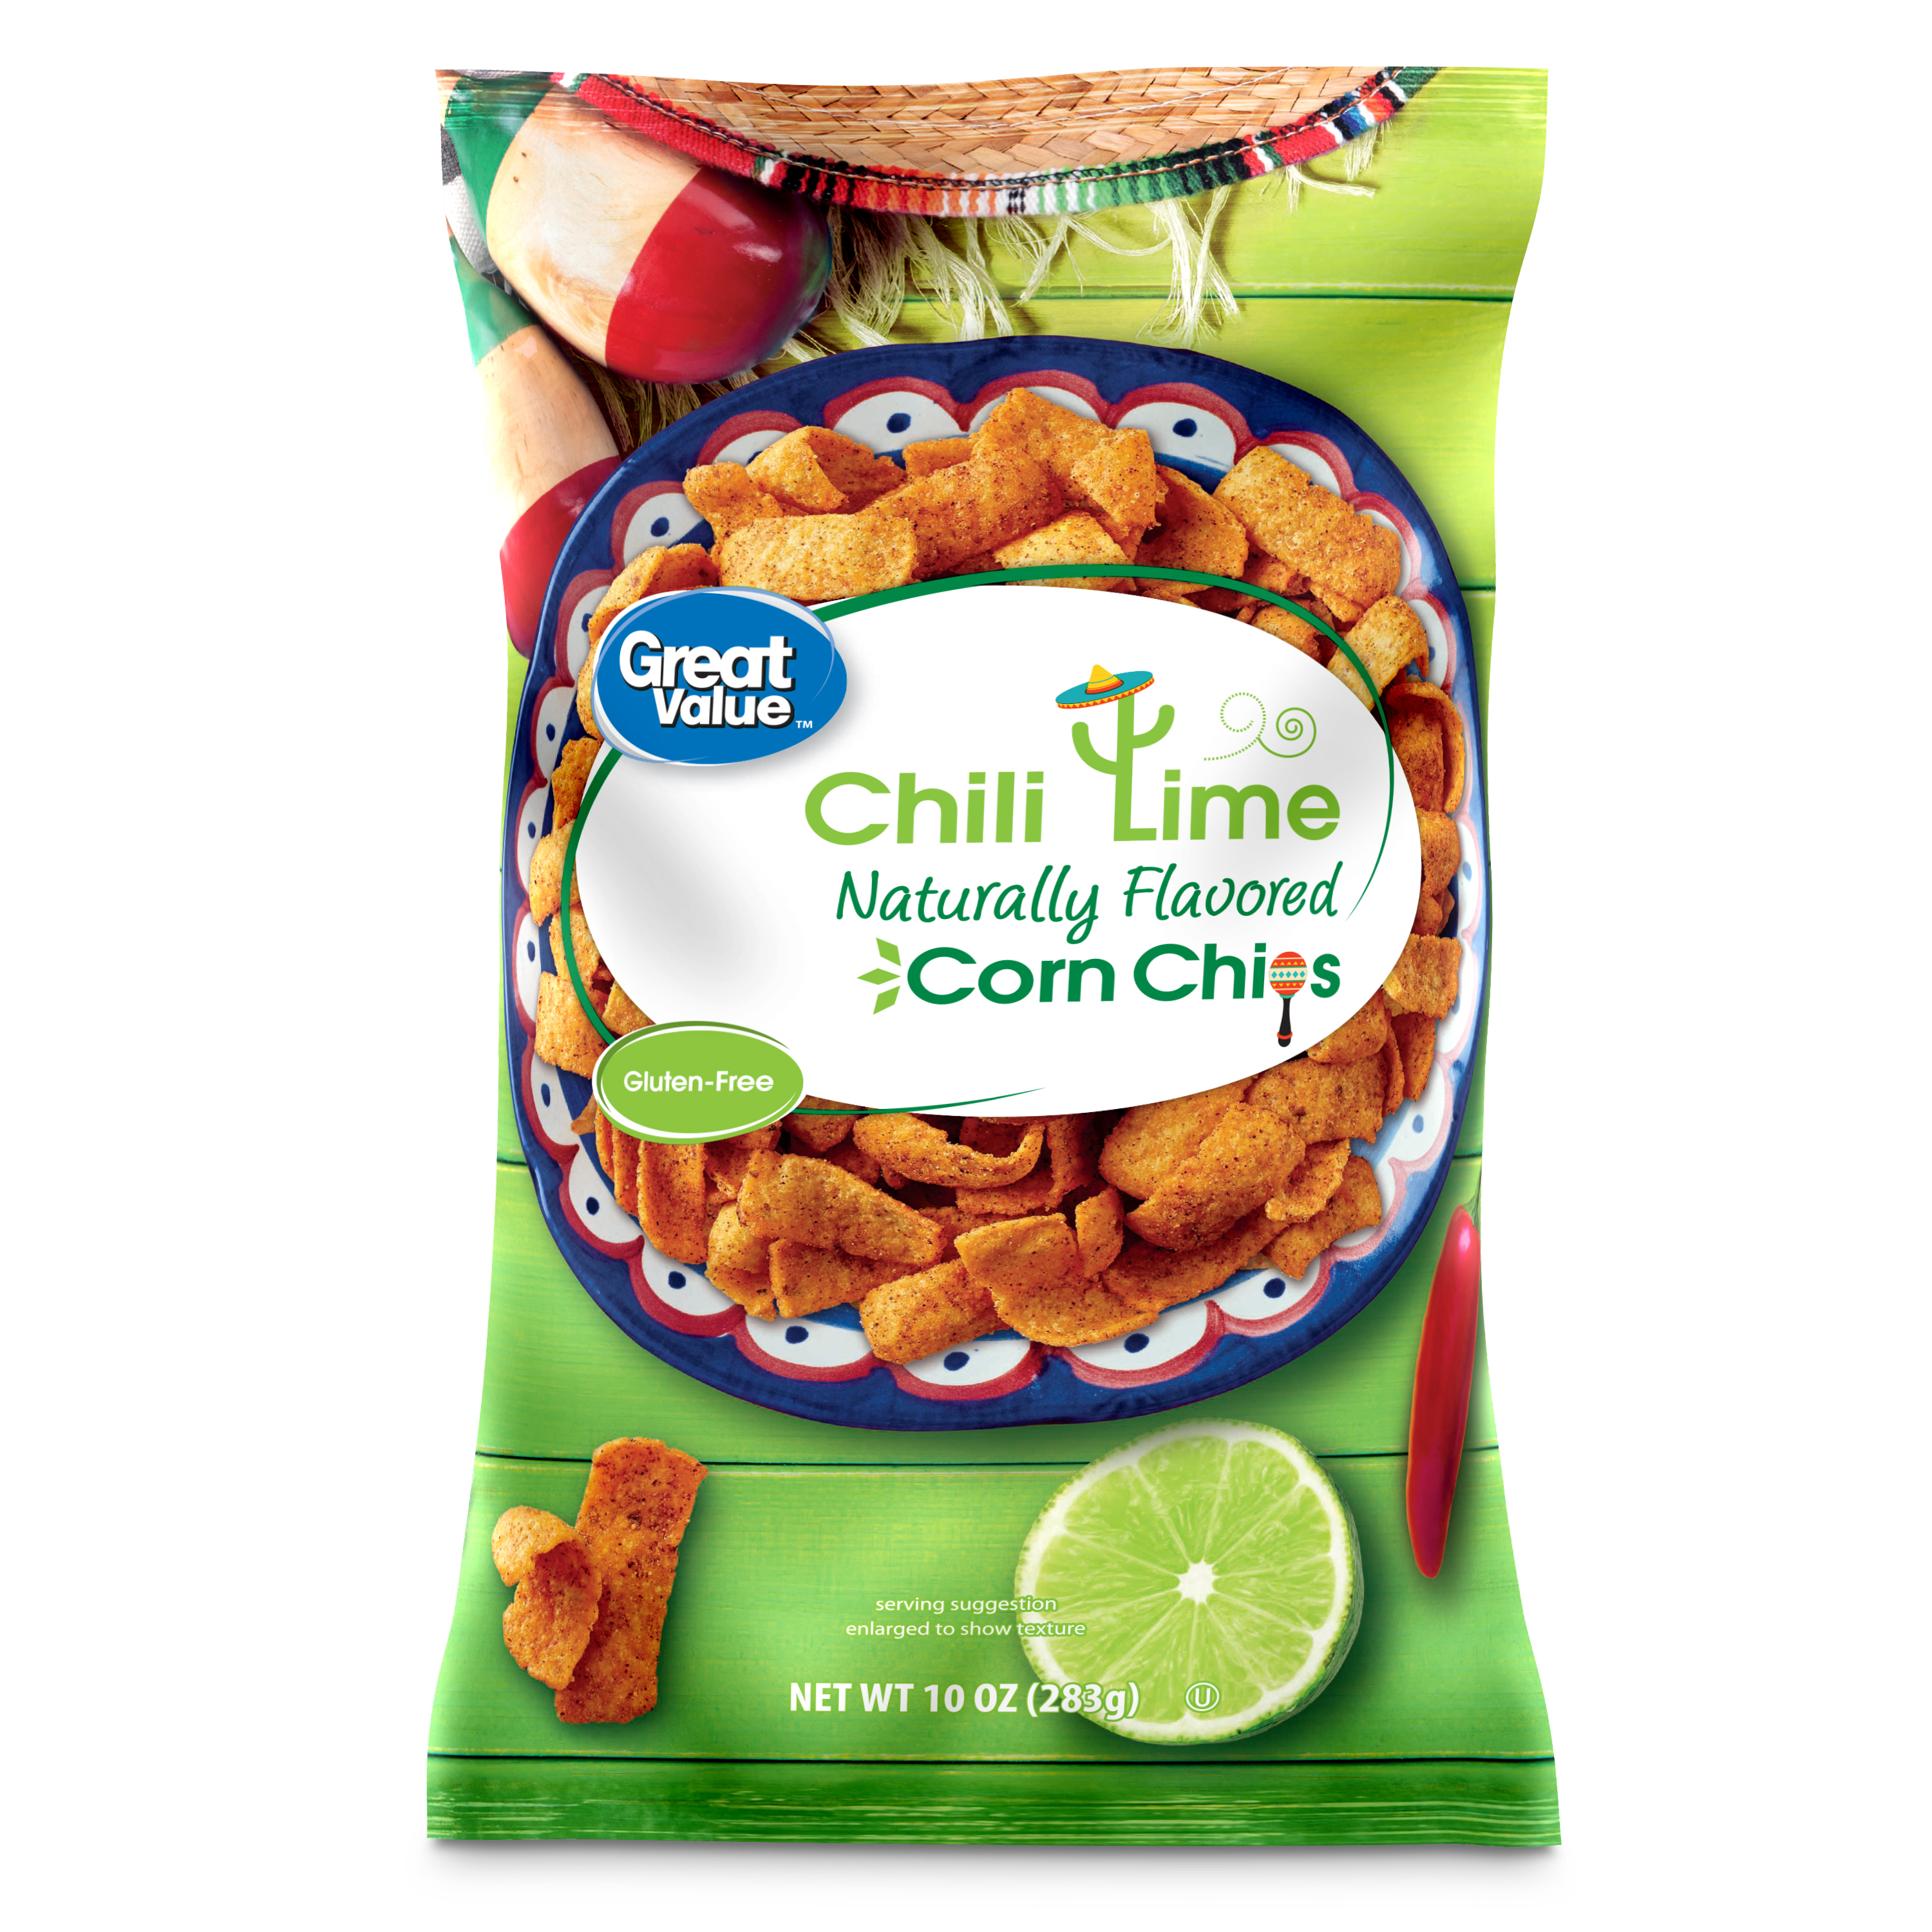 Great Value Chile Lime Corn Chips